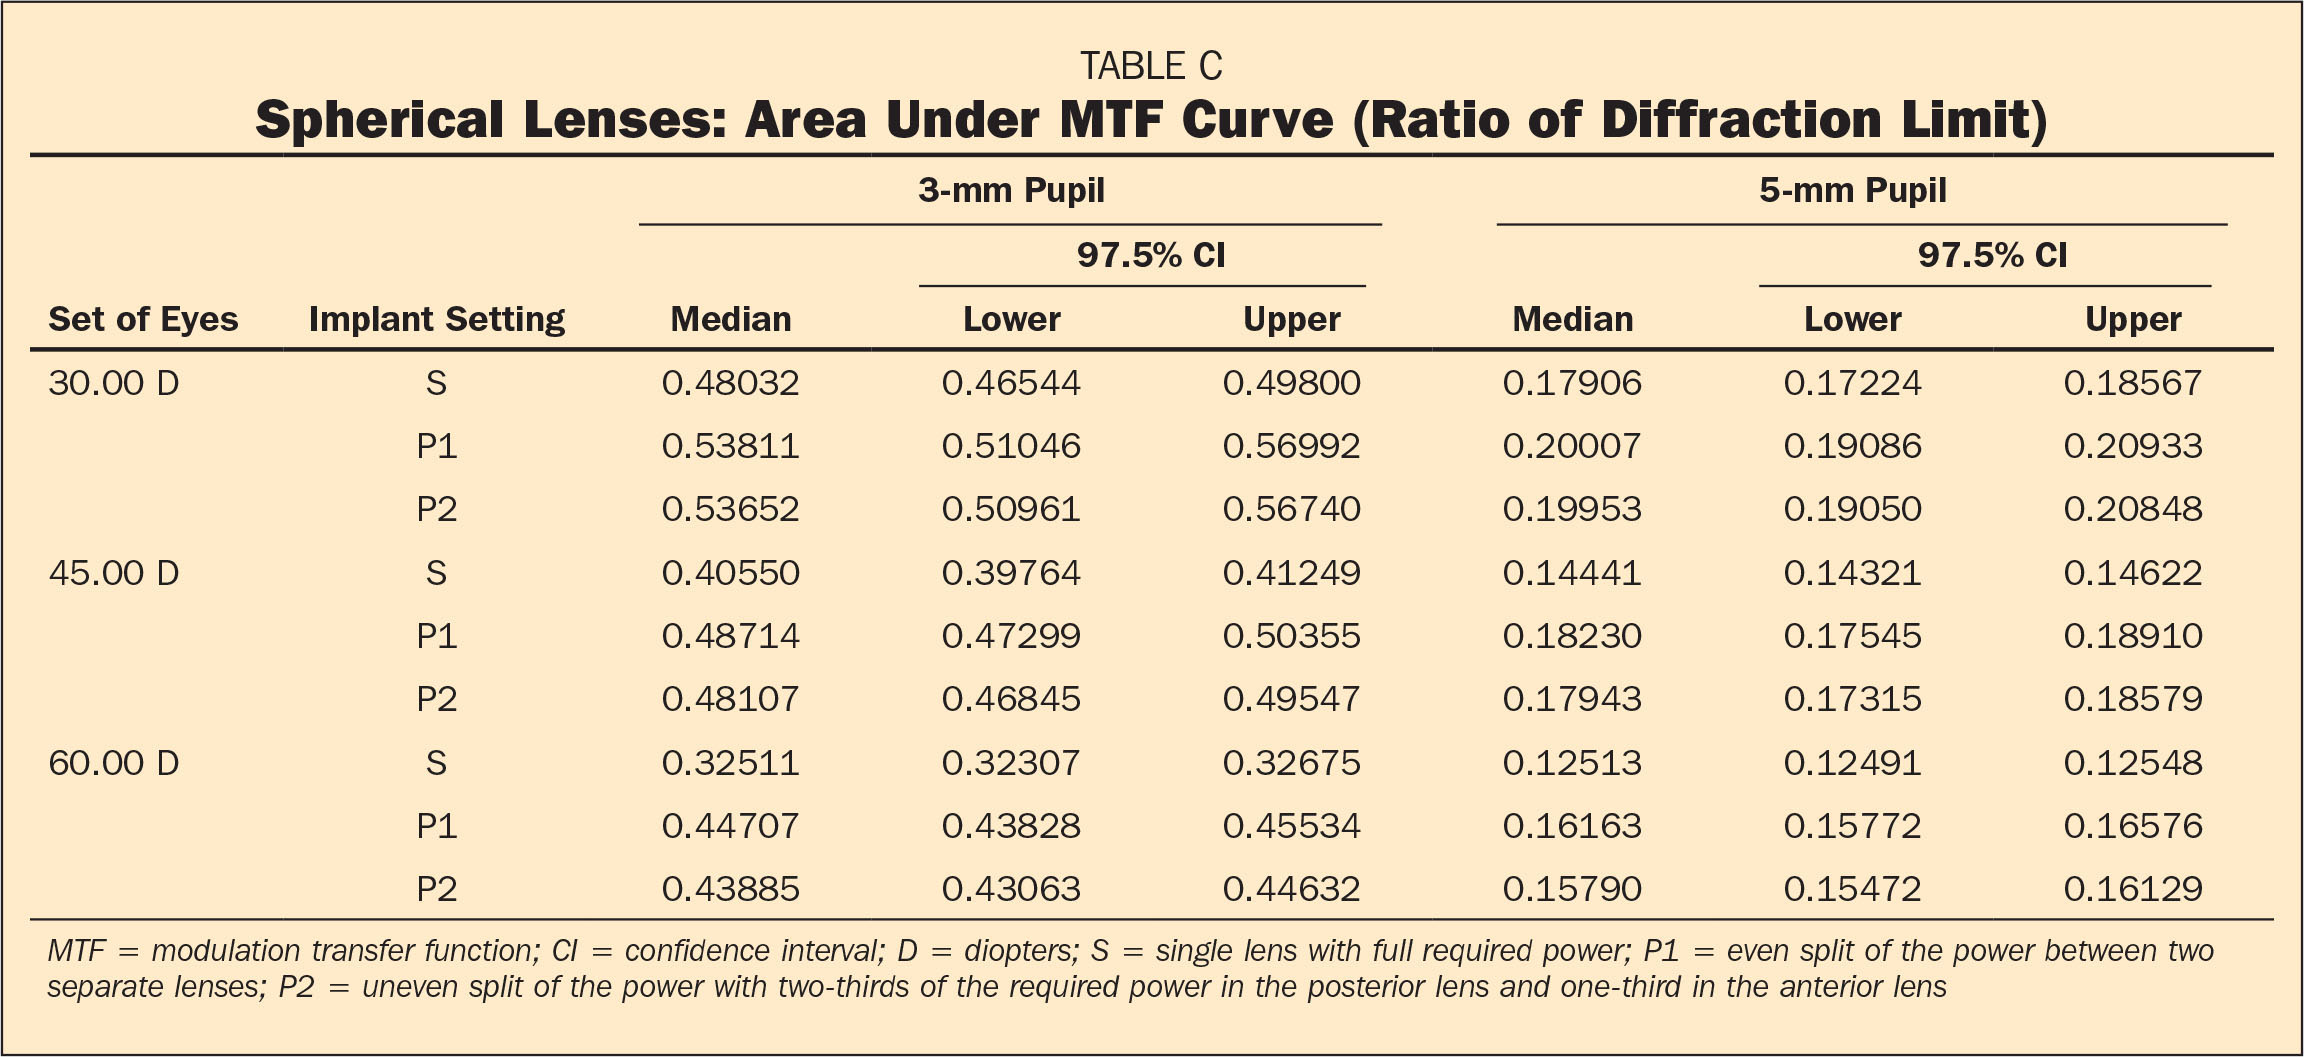 Spherical Lenses: Area Under MTF Curve (Ratio of Diffraction Limit)